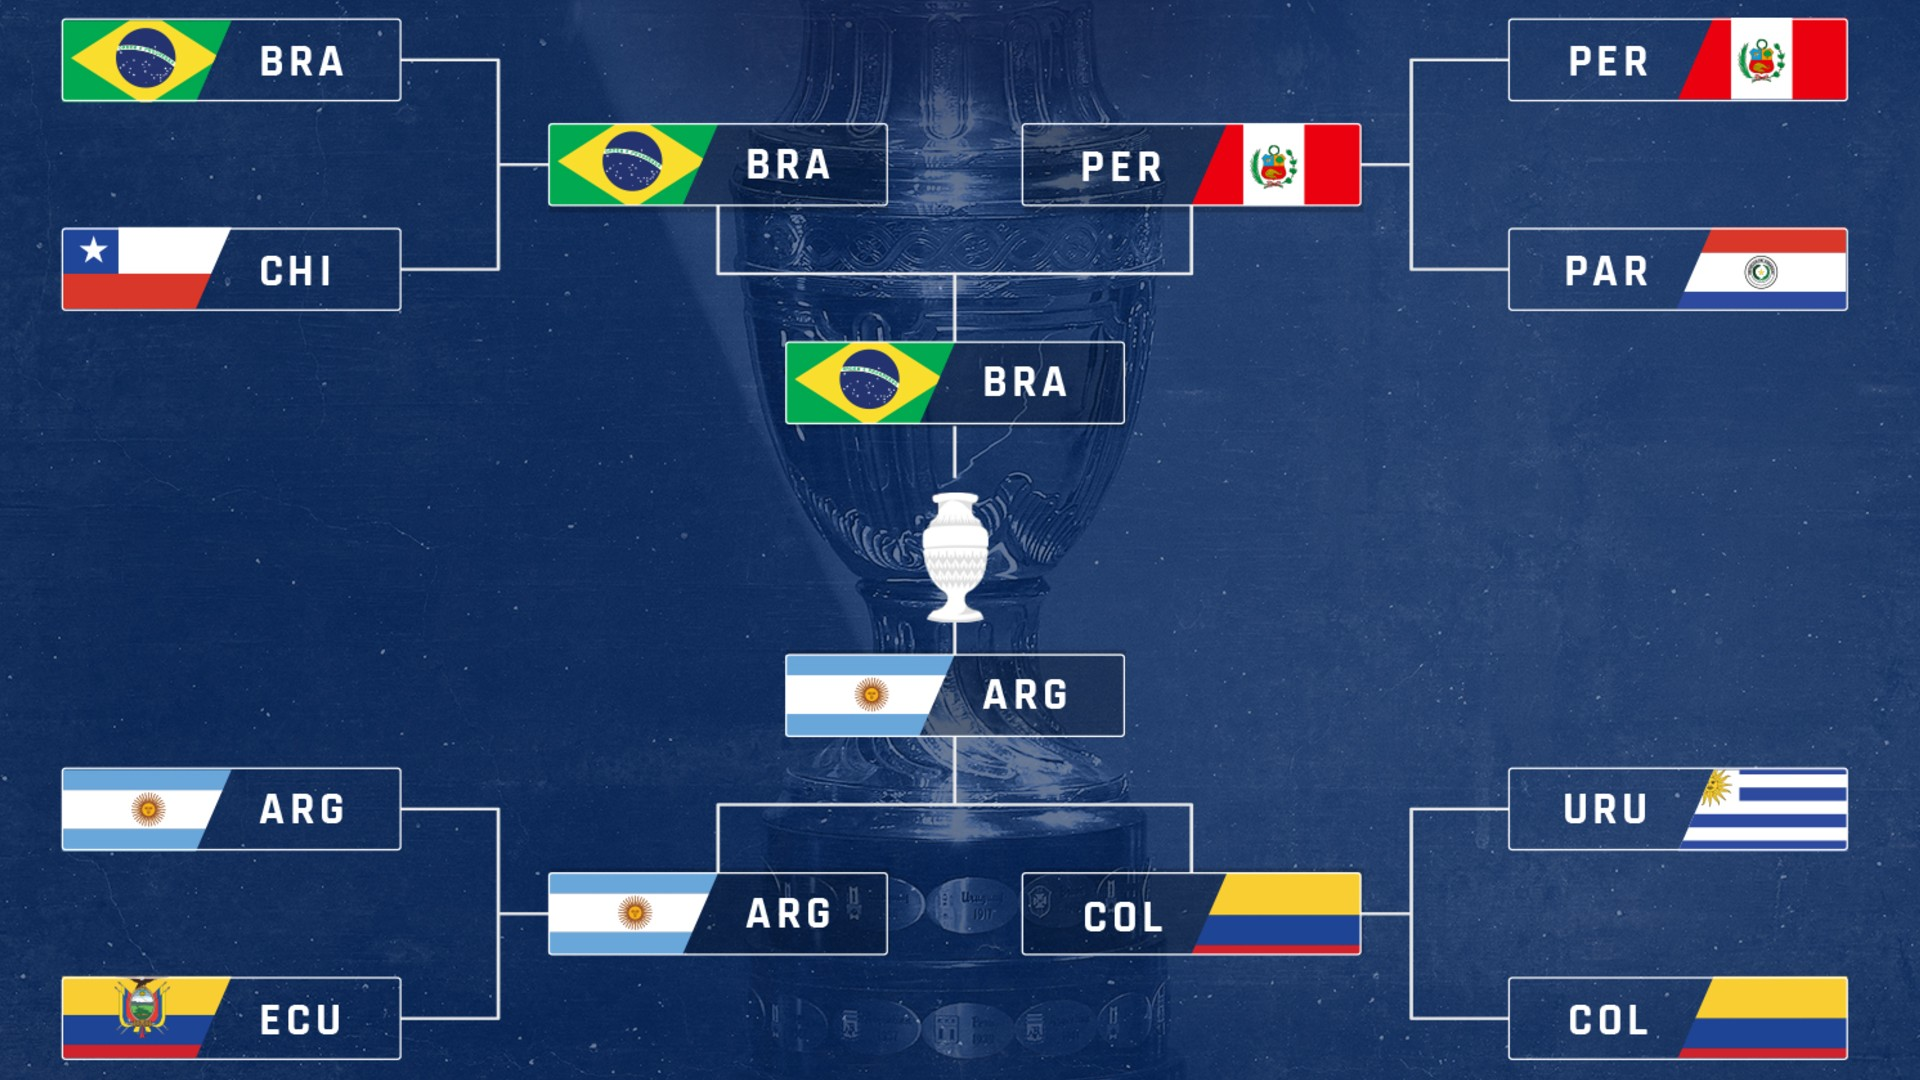 Copa America bracket 2021: TV schedule, channels, streams to watch every match in USA